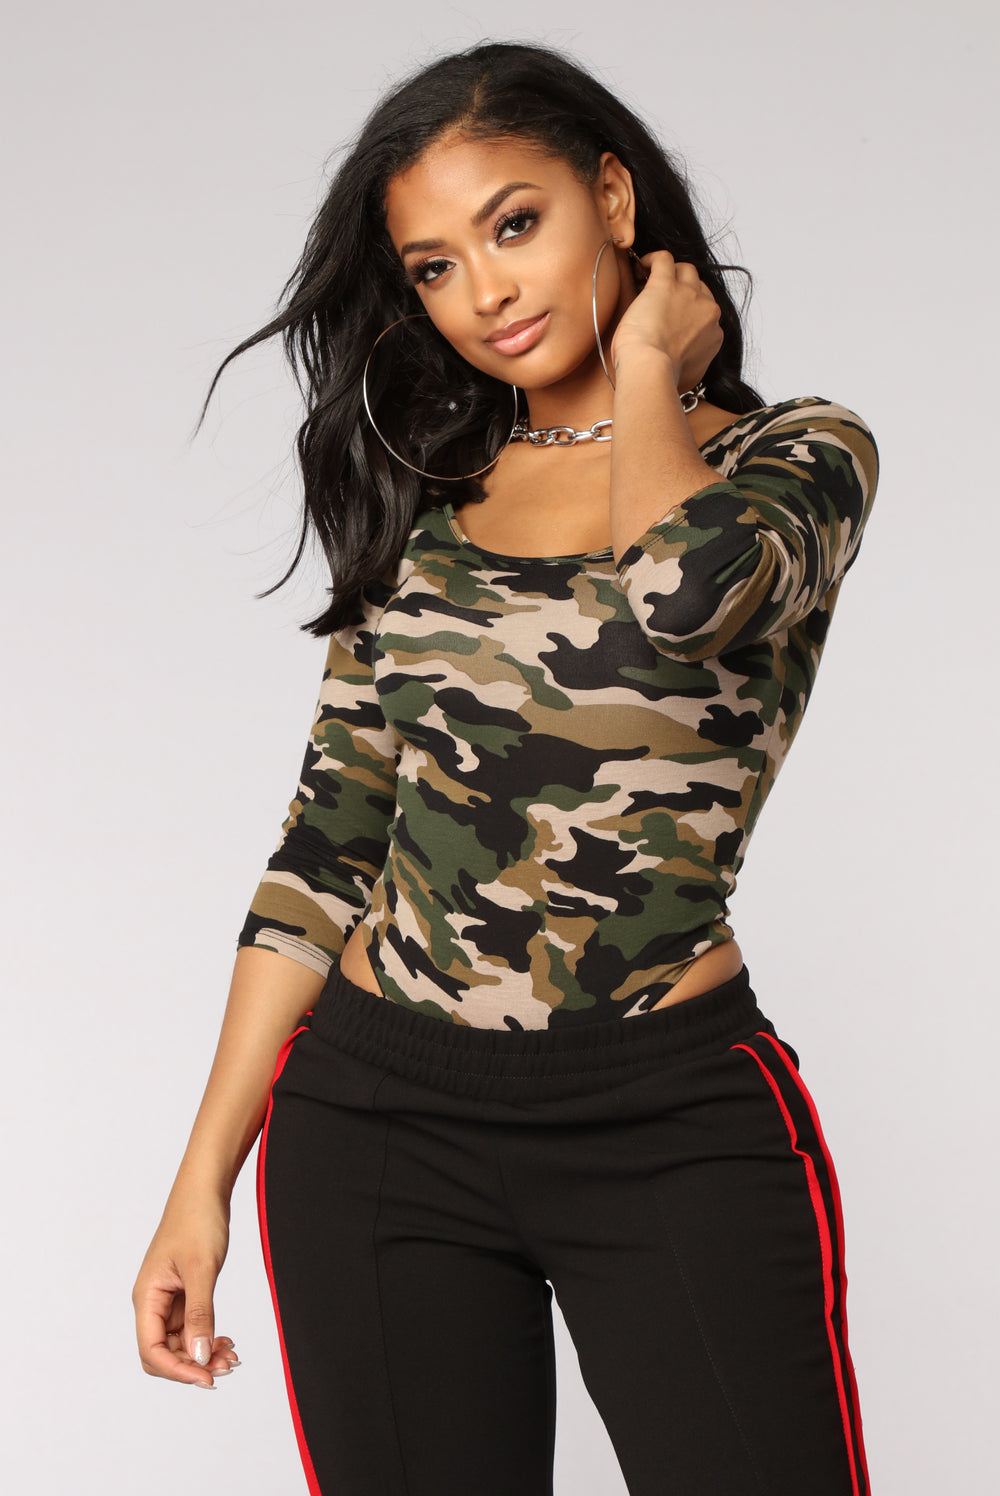 Going Incognito Bodysuit - Camo